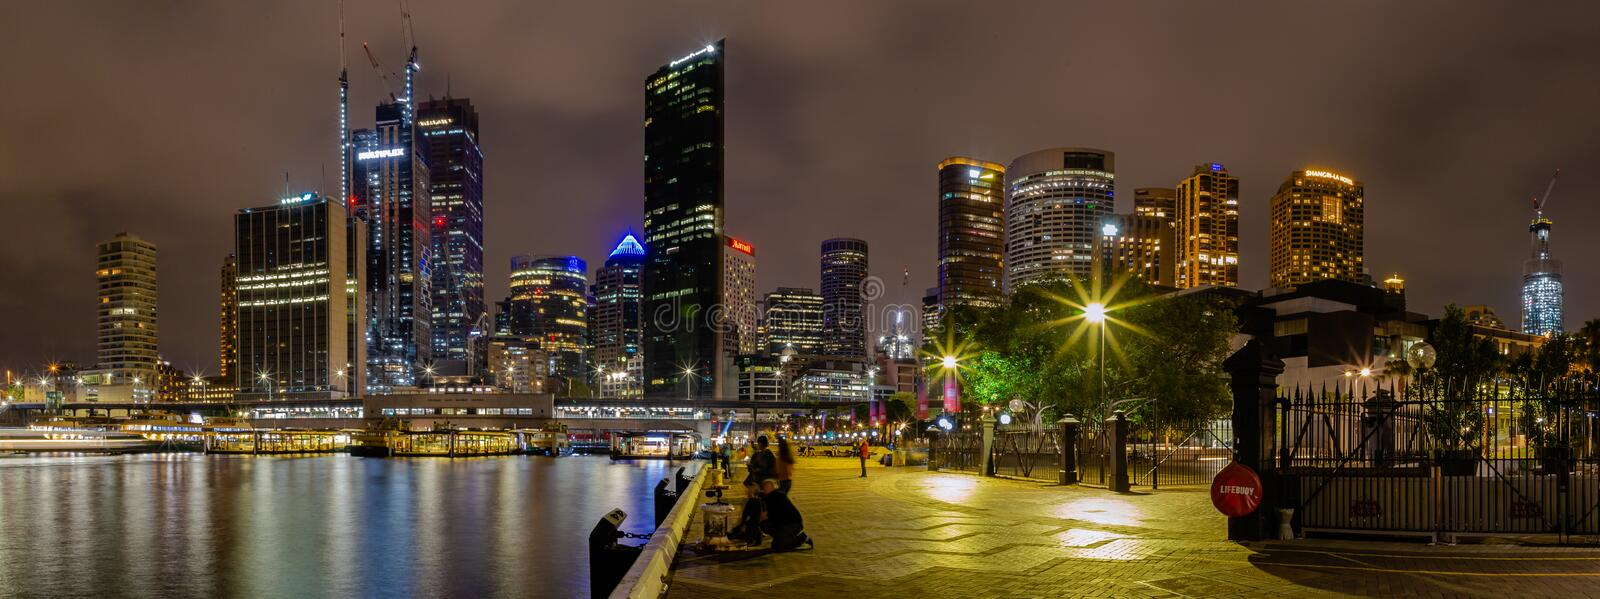 Night scene Sydney financial and hospitality buildings at the Circular Quay at Sydney Harbor New South Wales Australia. Smokey cloud this night might just be royalty free stock image